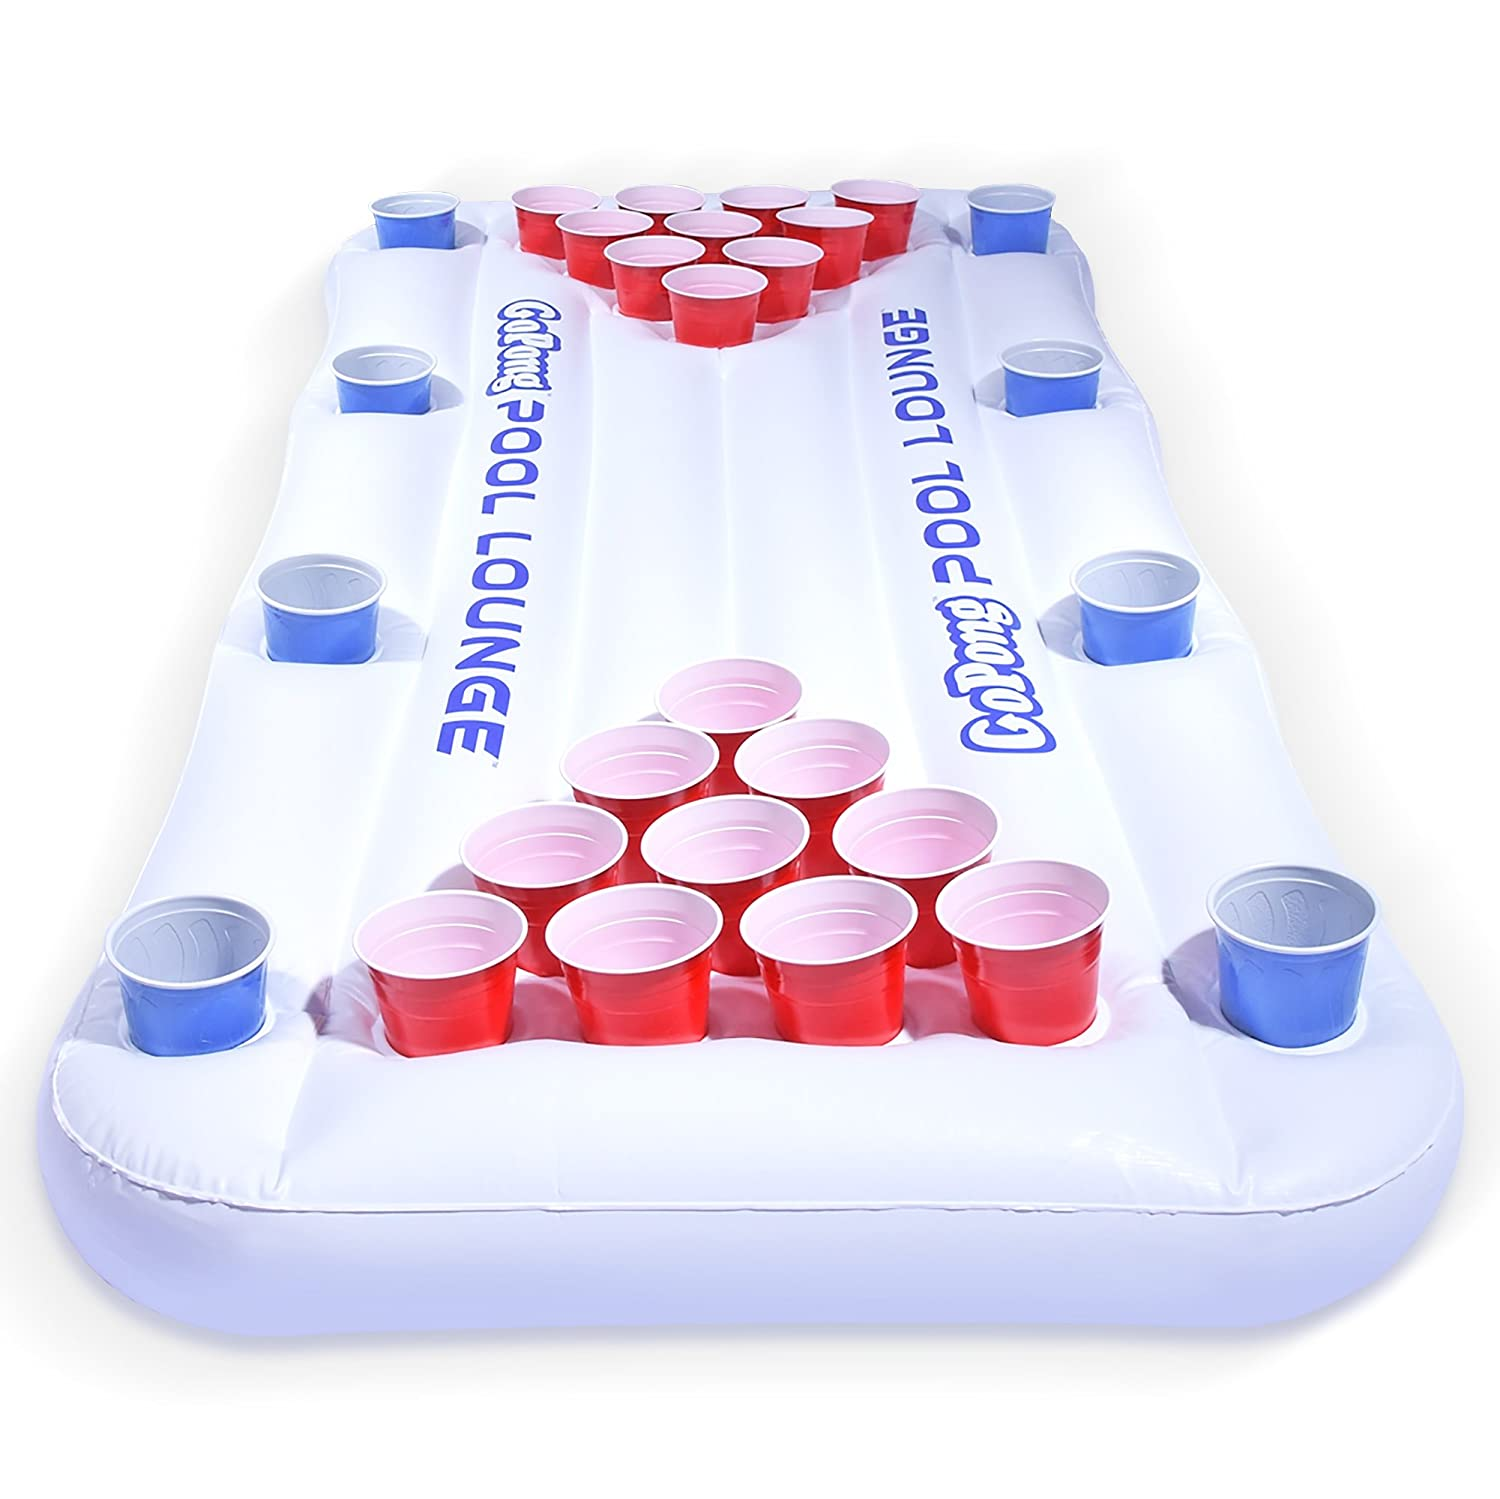 Amazoncom GoPong Pool Lounge Beer Pong Inflatable With Social - Four corners drinking game